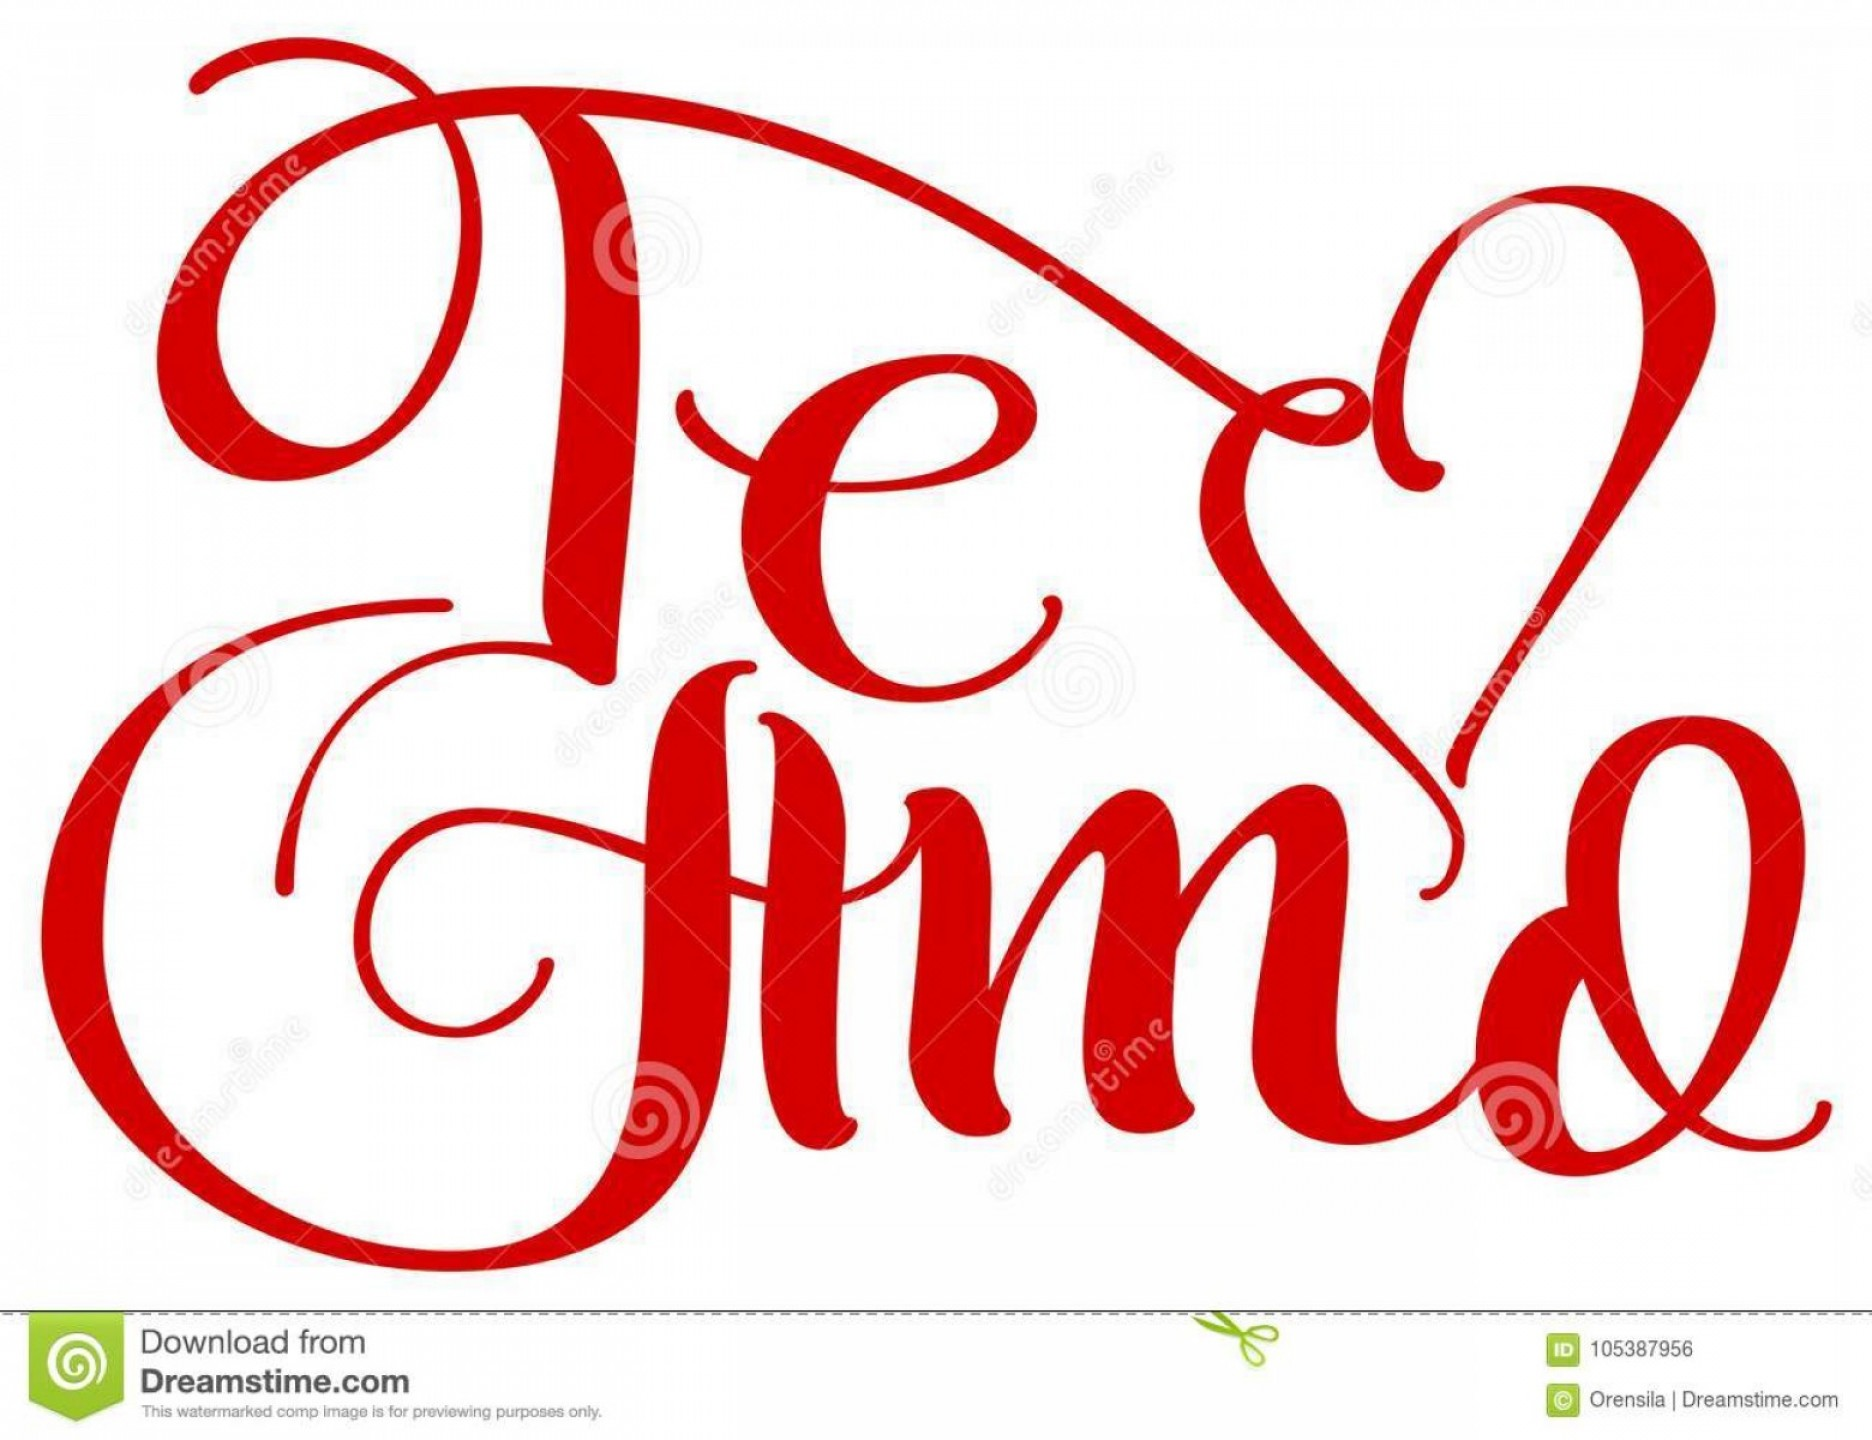 Vector Te Amos: Te Amo Translation Spain Language I Love You Handwritten Calligraphy Text Day Saint Valentine Isolated White Vector Image